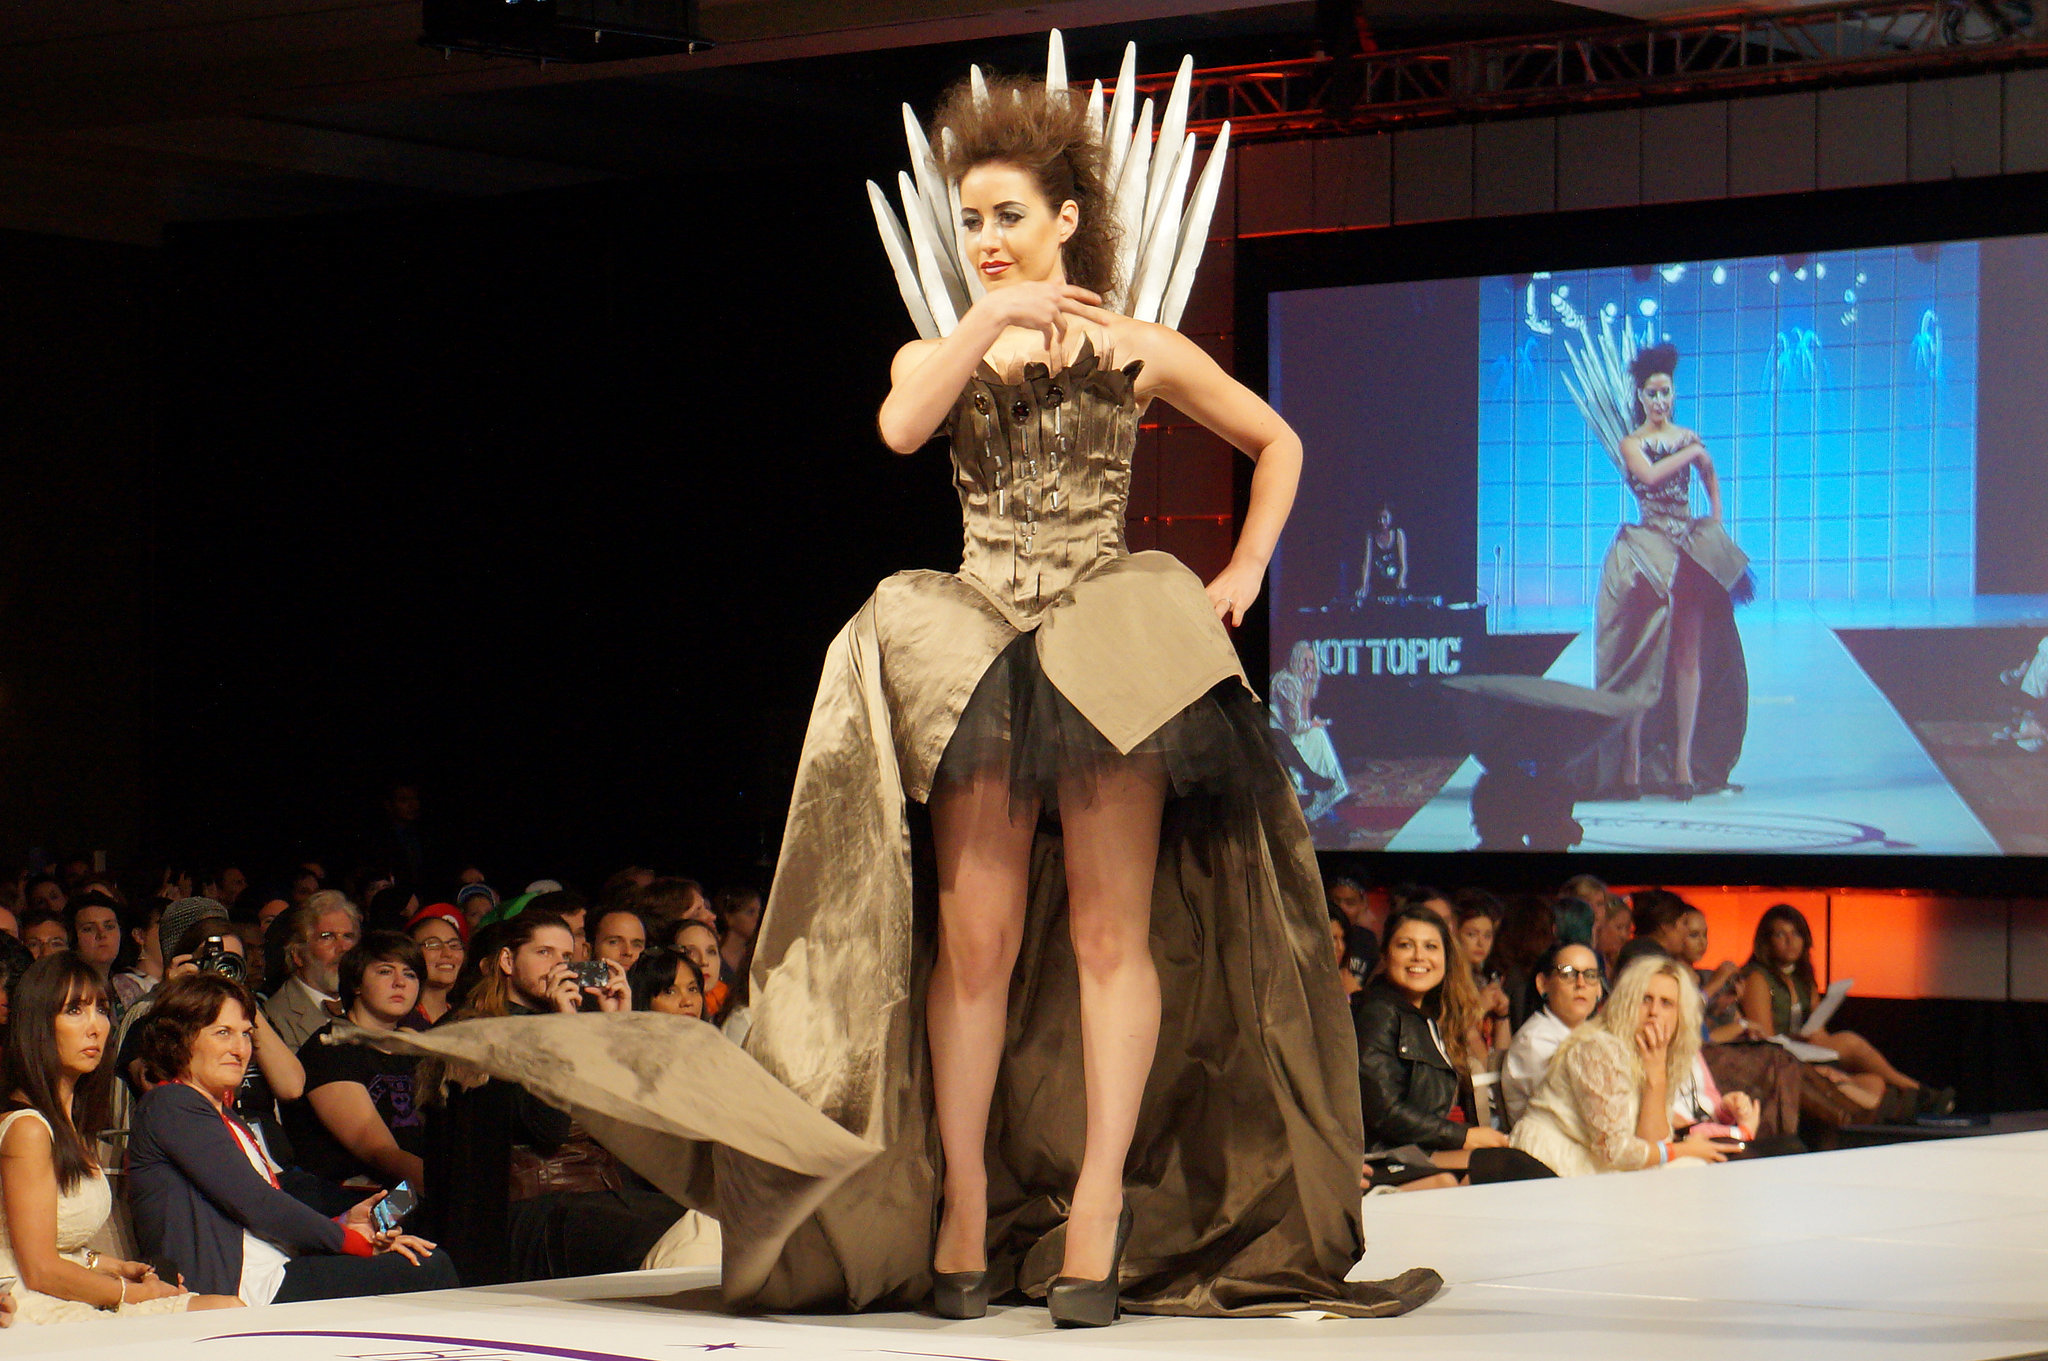 6. The Iron Throne From Game of Thrones